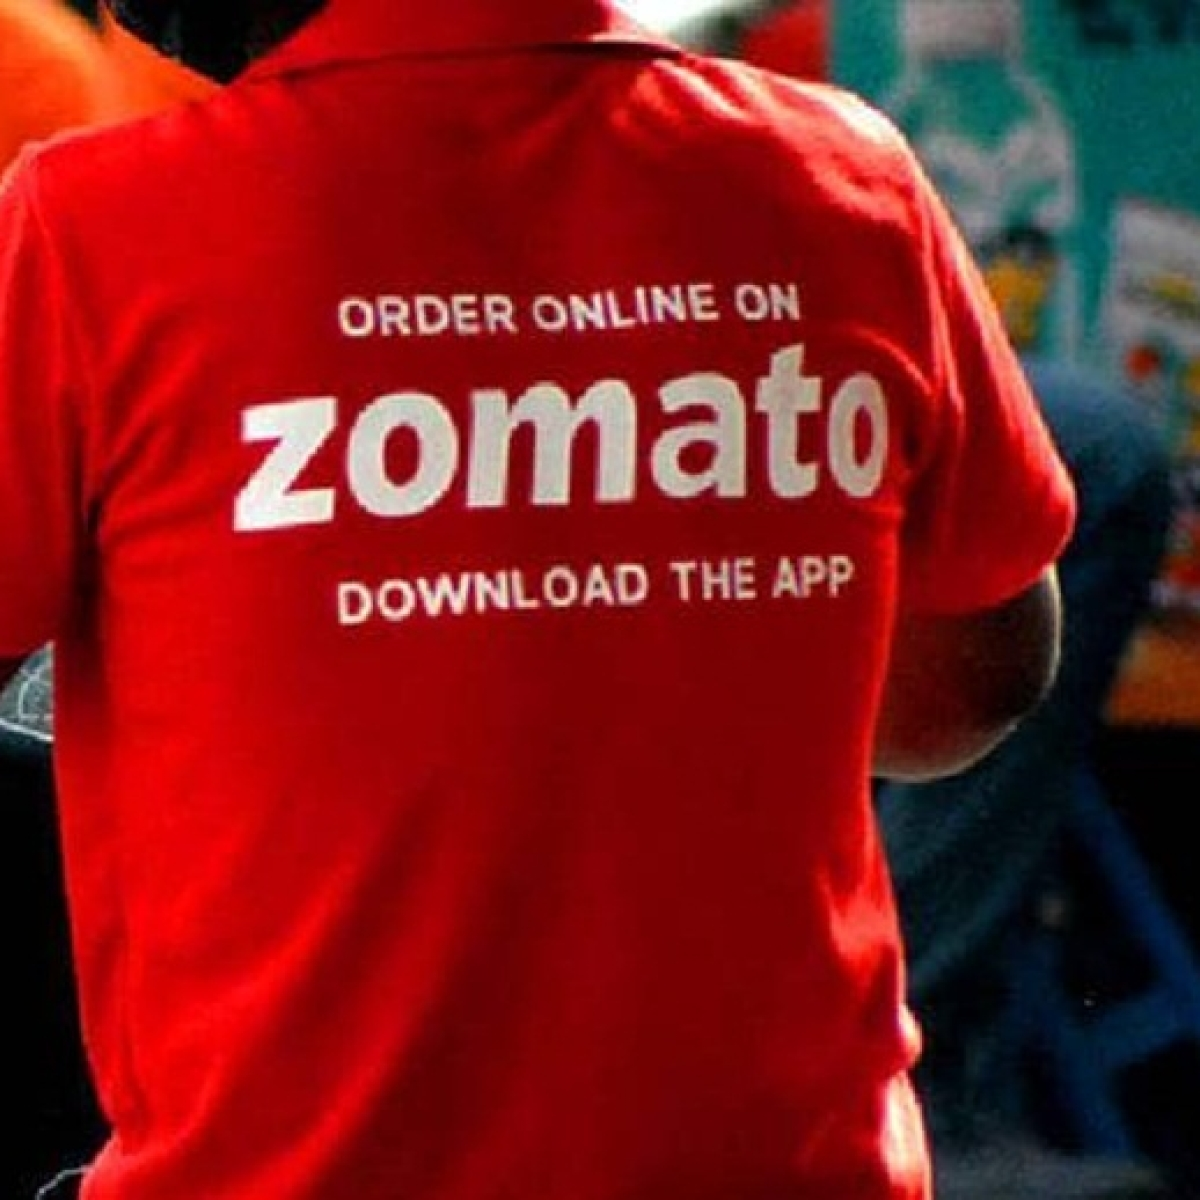 'Food has no religion, it is a religion': Zomato wins hearts with epic reply to man who cancelled order over 'non-Hindu' delivery boy